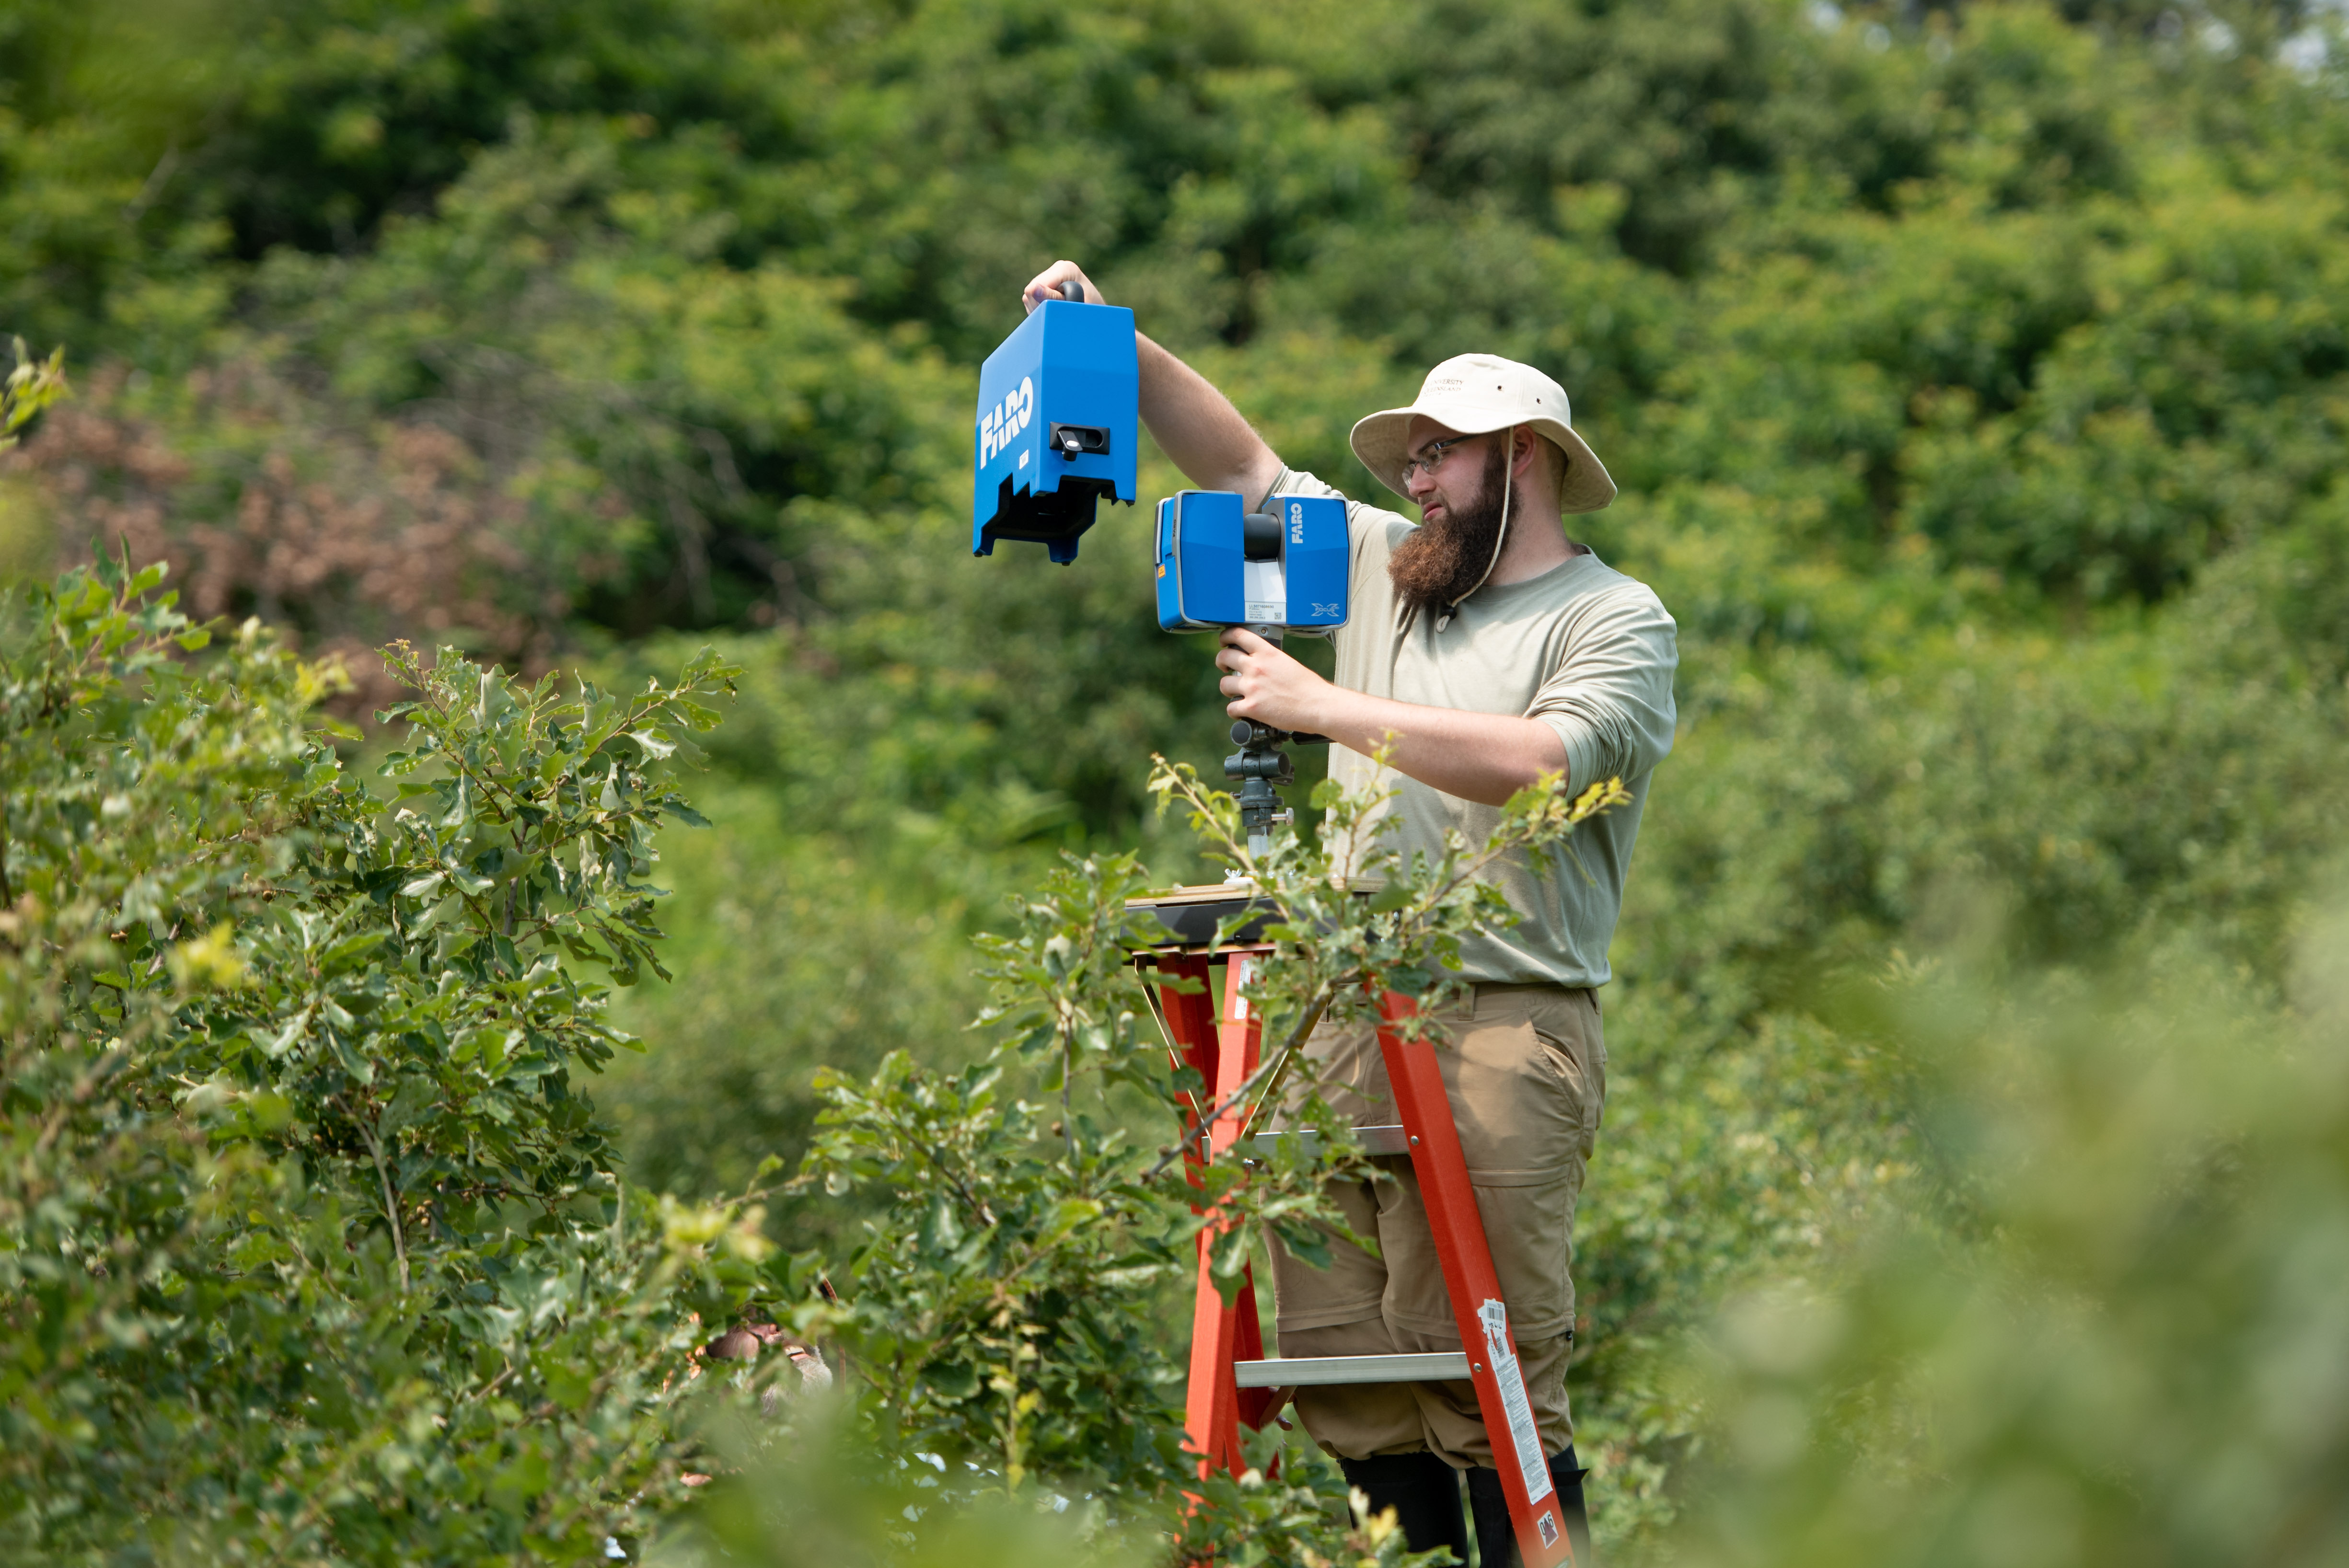 Sean Rigney '20 uses a terrestrial laser scanner to collect 3D images of the shrub structure in the Albany Pine Bush Preserve. Working with Steve Rice, professor of biology, Rigney is among more than 130 students across a multitude of disciplines engaged in a summer research project.